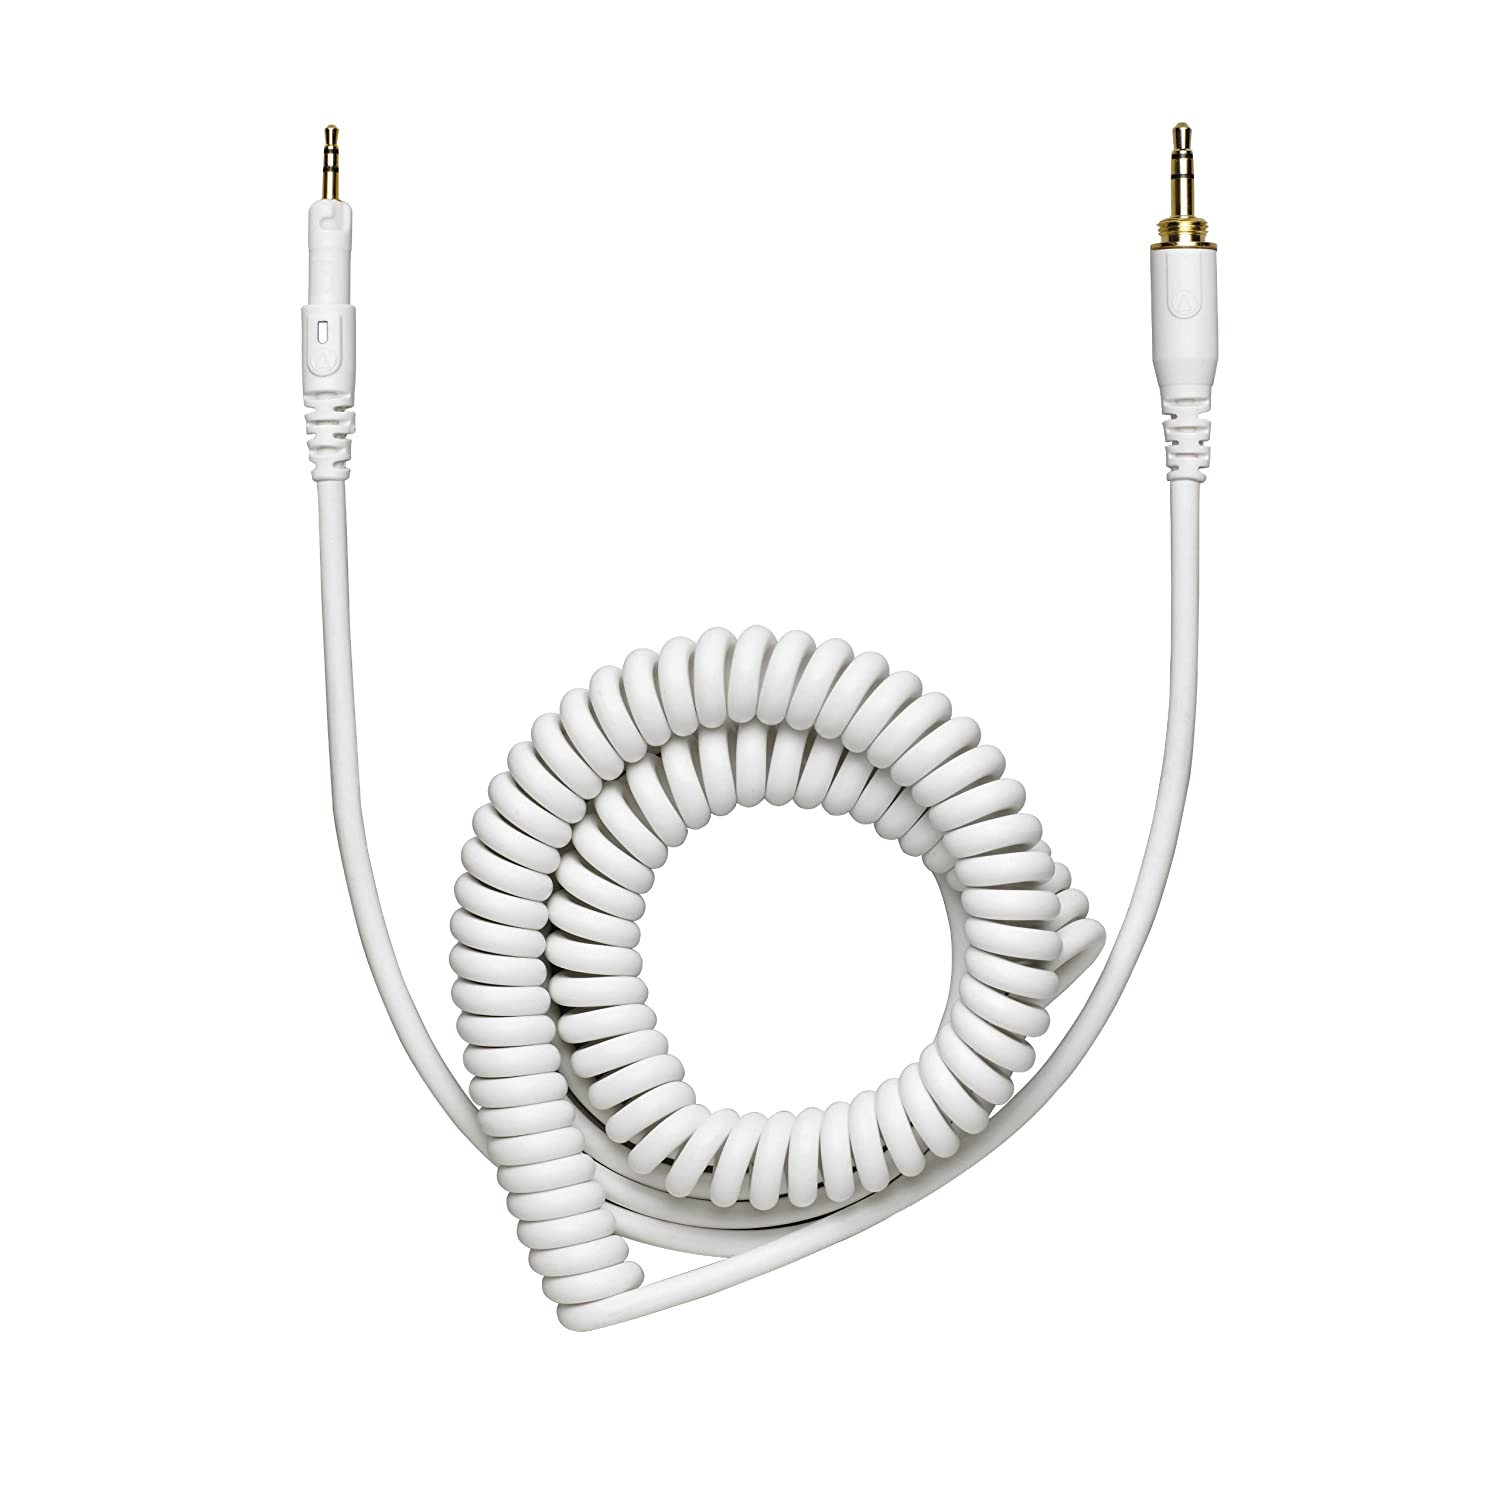 Audio-Technica HP-CC-WH Replacement Coiled Cable for M Series Headphones